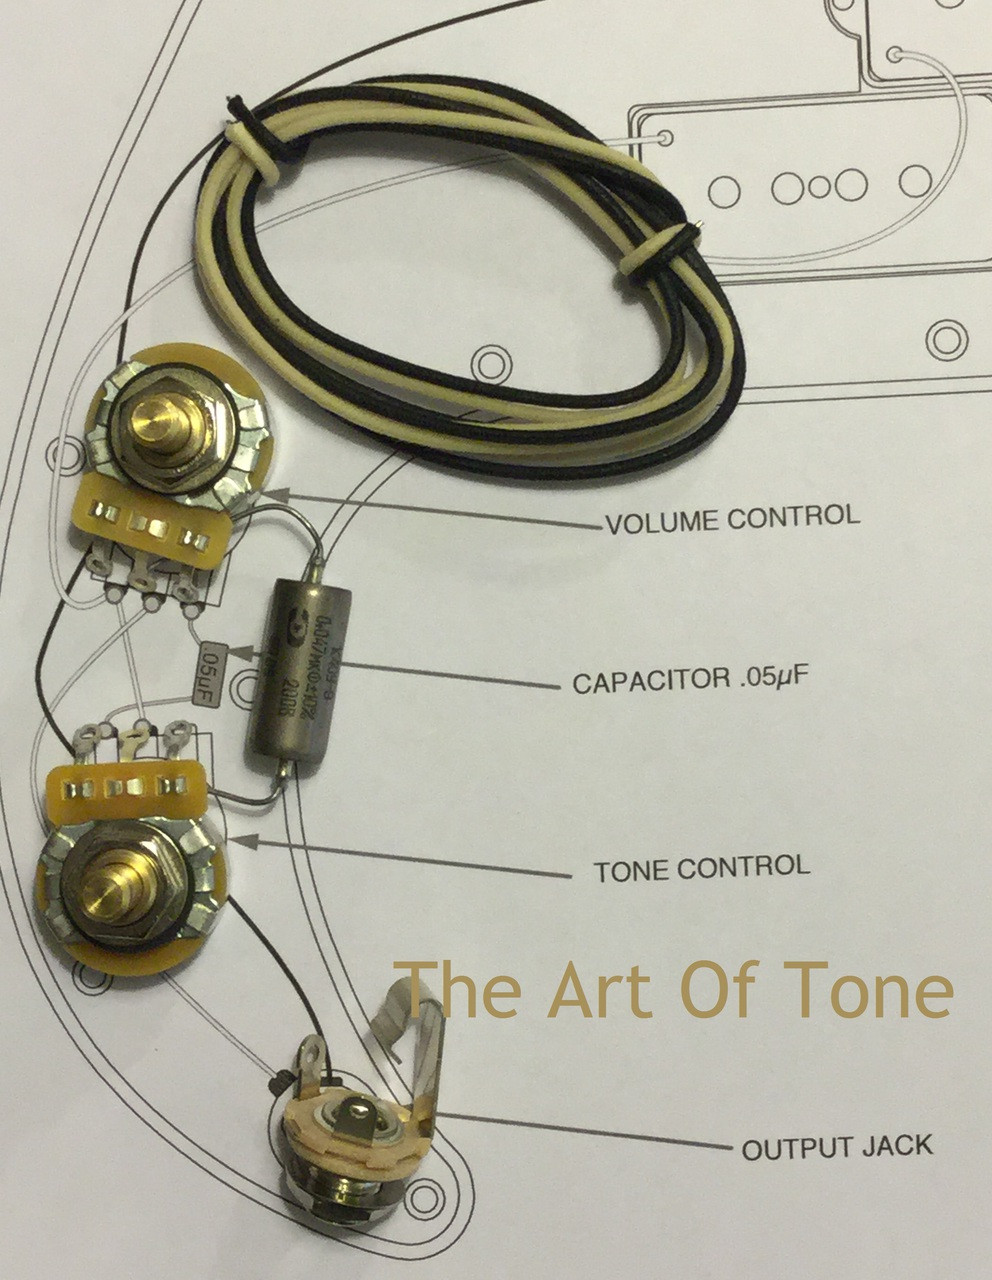 Fender Output Jack Wiring Content Resource Of Diagram Guitar Input Upgrade Kit For Precision Bass Rh Theartoftone Com Microphone